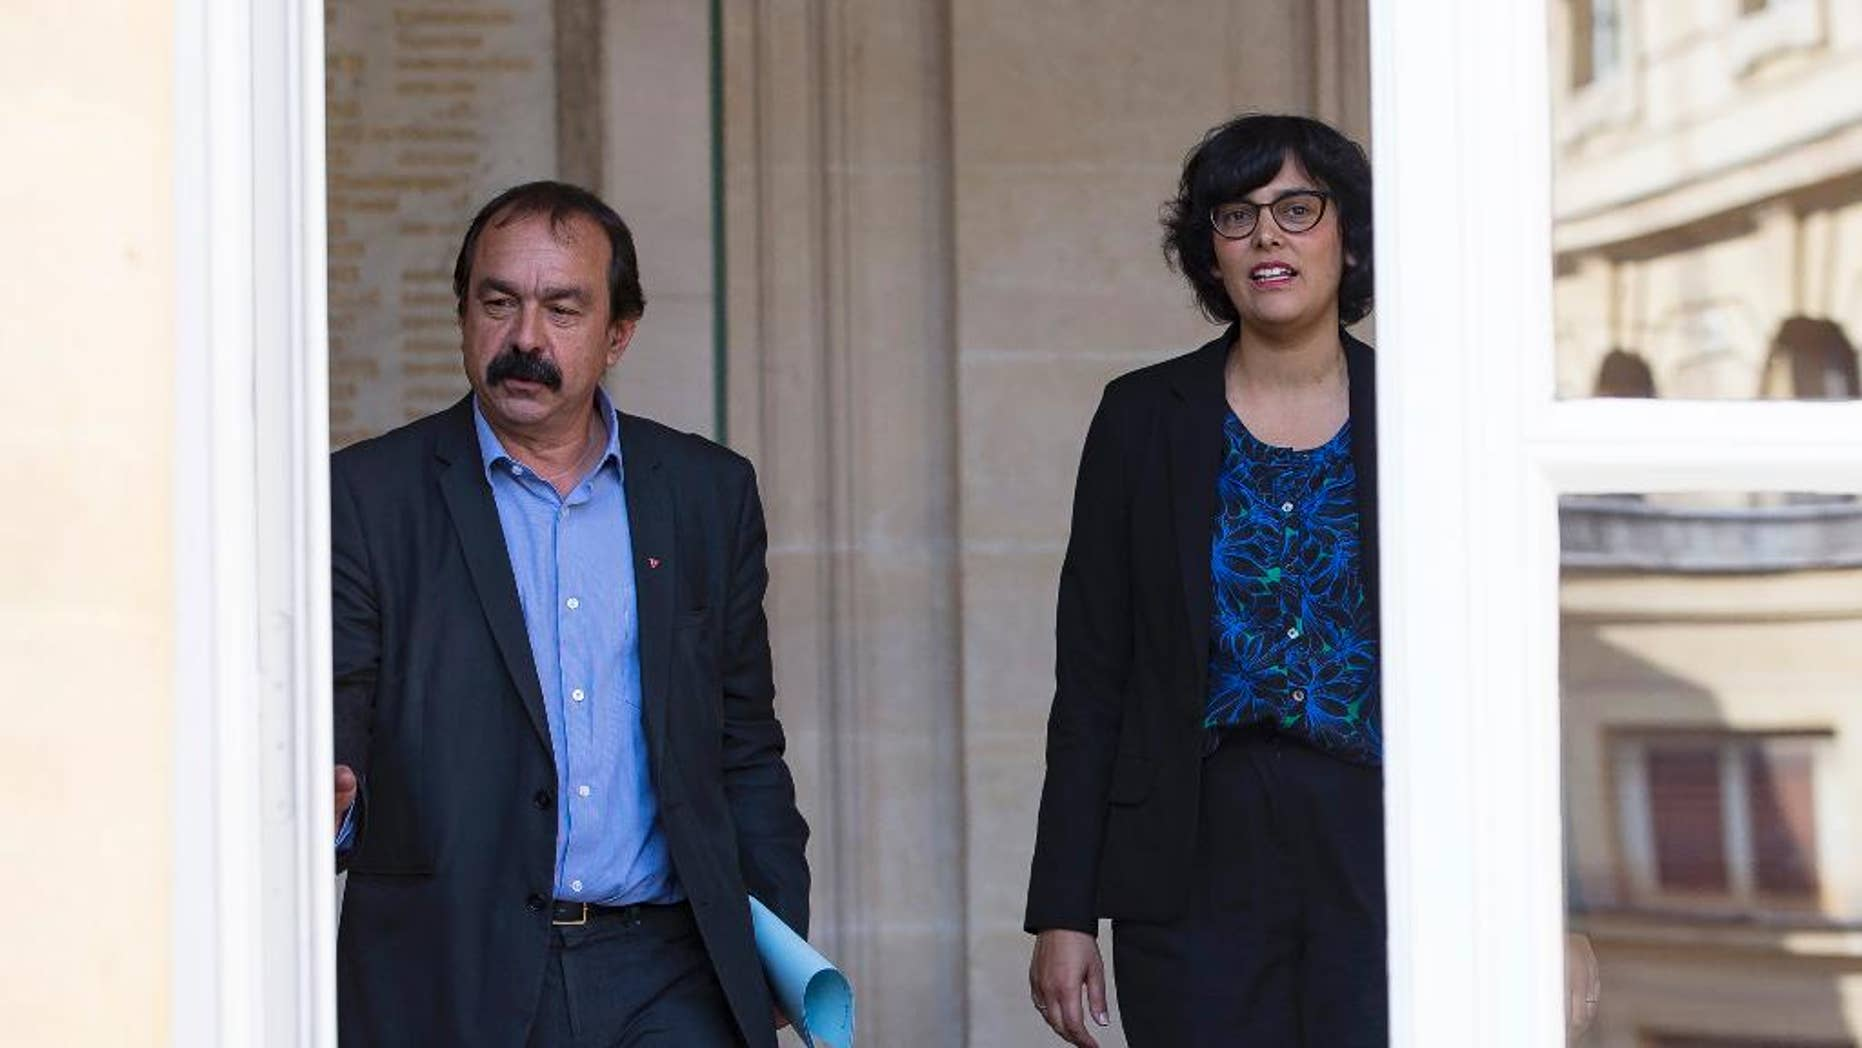 The leader of France's left-wing CGT union Philippe Martinez, left, and French Labor Minister Myriam El Khomri, leave the ministry after their meeting in Paris, Friday, June 17, 2016. Martinez, the main force of opposition to an unpopular labor reform bill that has led to violence in the streets, says he's asked the labor minister to suspend parliamentary debate on the measure and re-write it. (AP Photo)